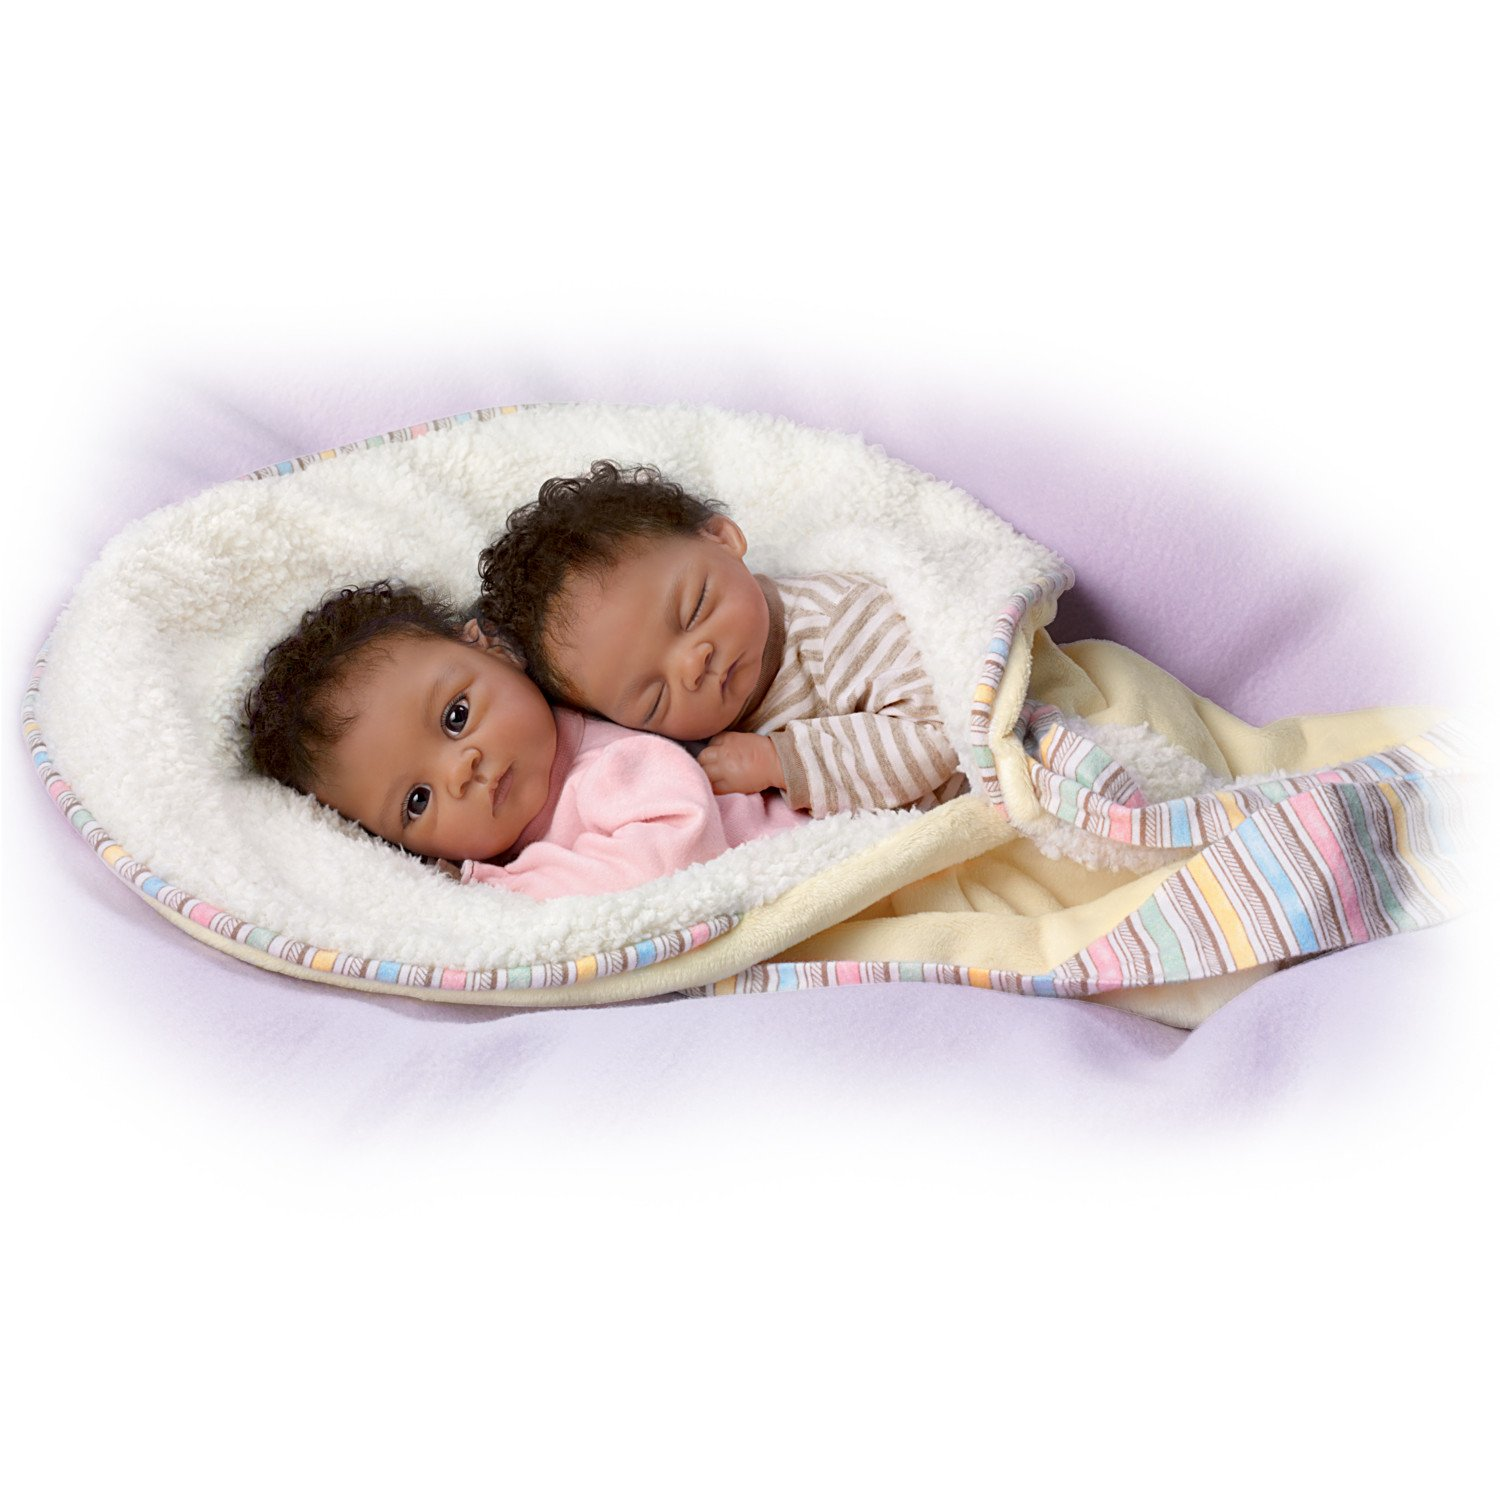 Jada and jayden twins in custom bunting so truly real lifelike realistic newborn african american baby dolls 13 inches by the ashton drake galleries